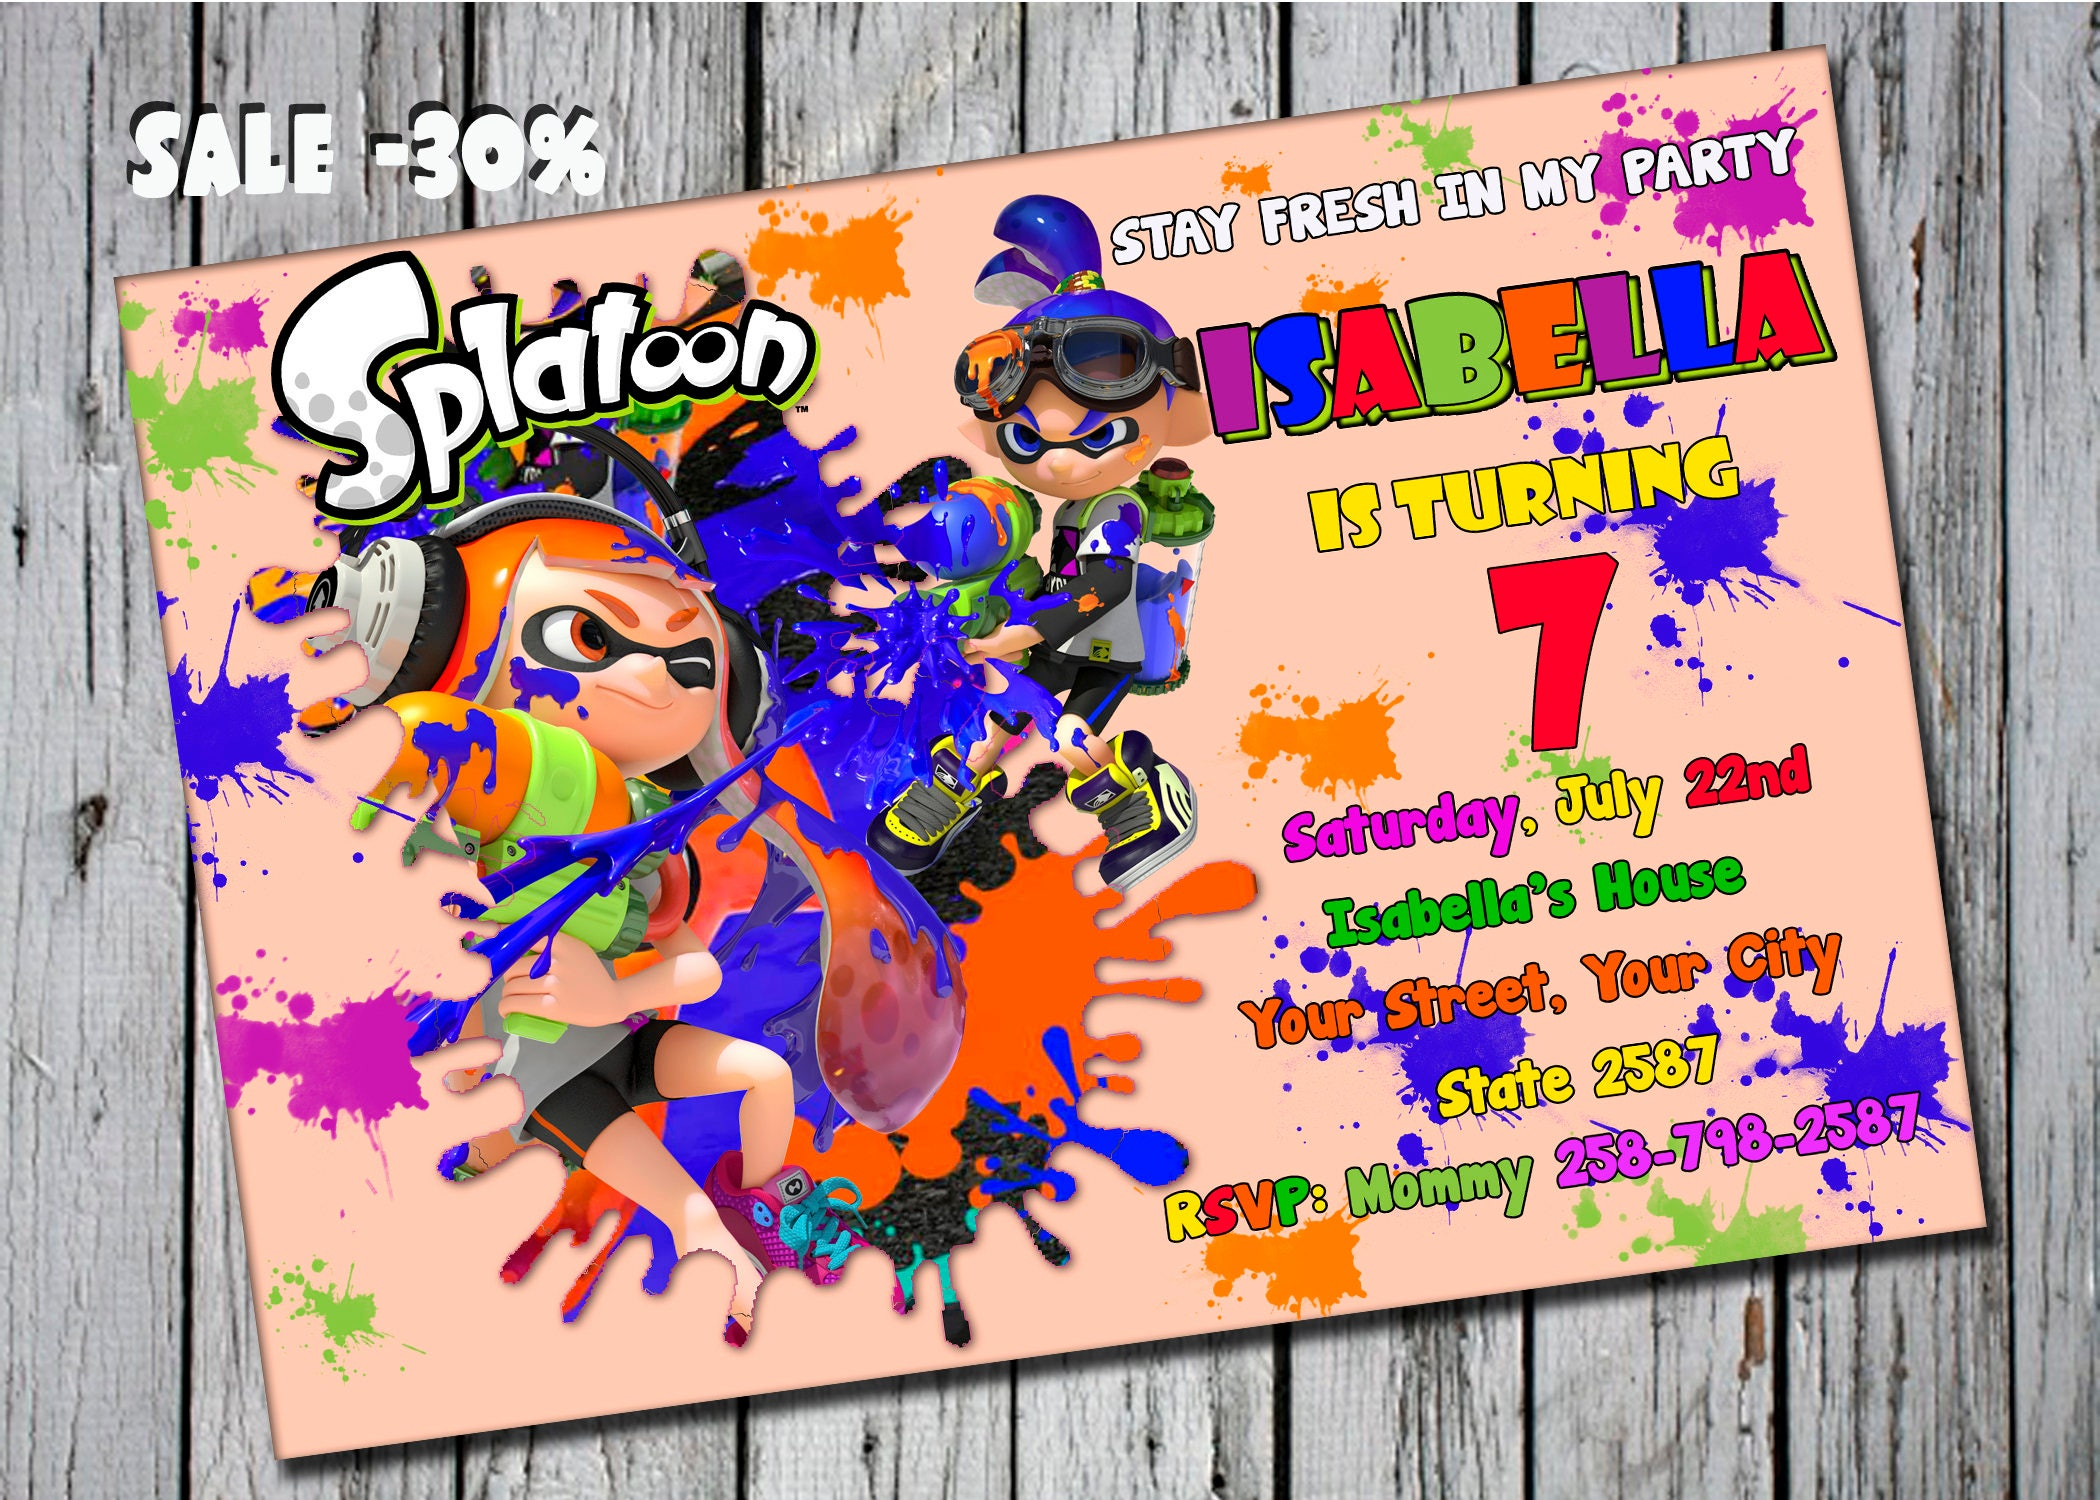 Splatoon party splatoon birthday invitation splatoon description splatoon birthday invitation monicamarmolfo Images